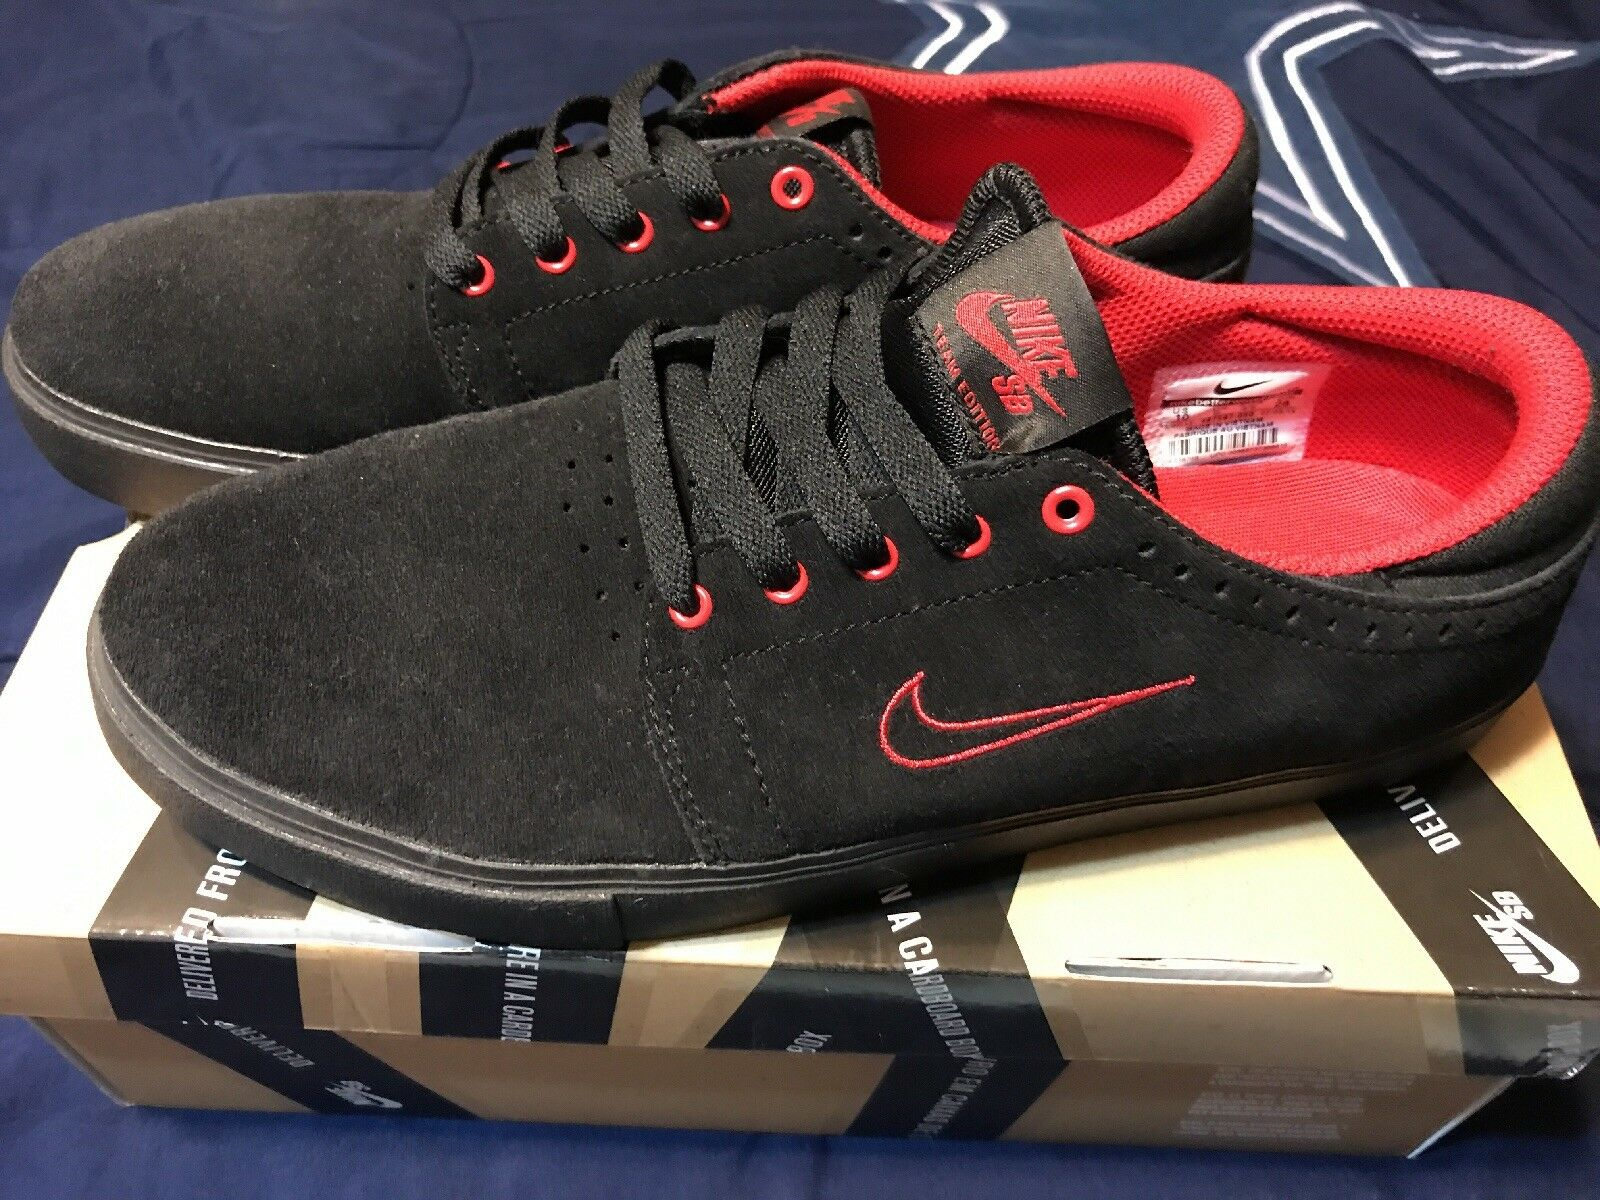 b1f6747325e1 Nike SB Team Edition Black University Red Size 10 Worn Worn Worn Once e10c57